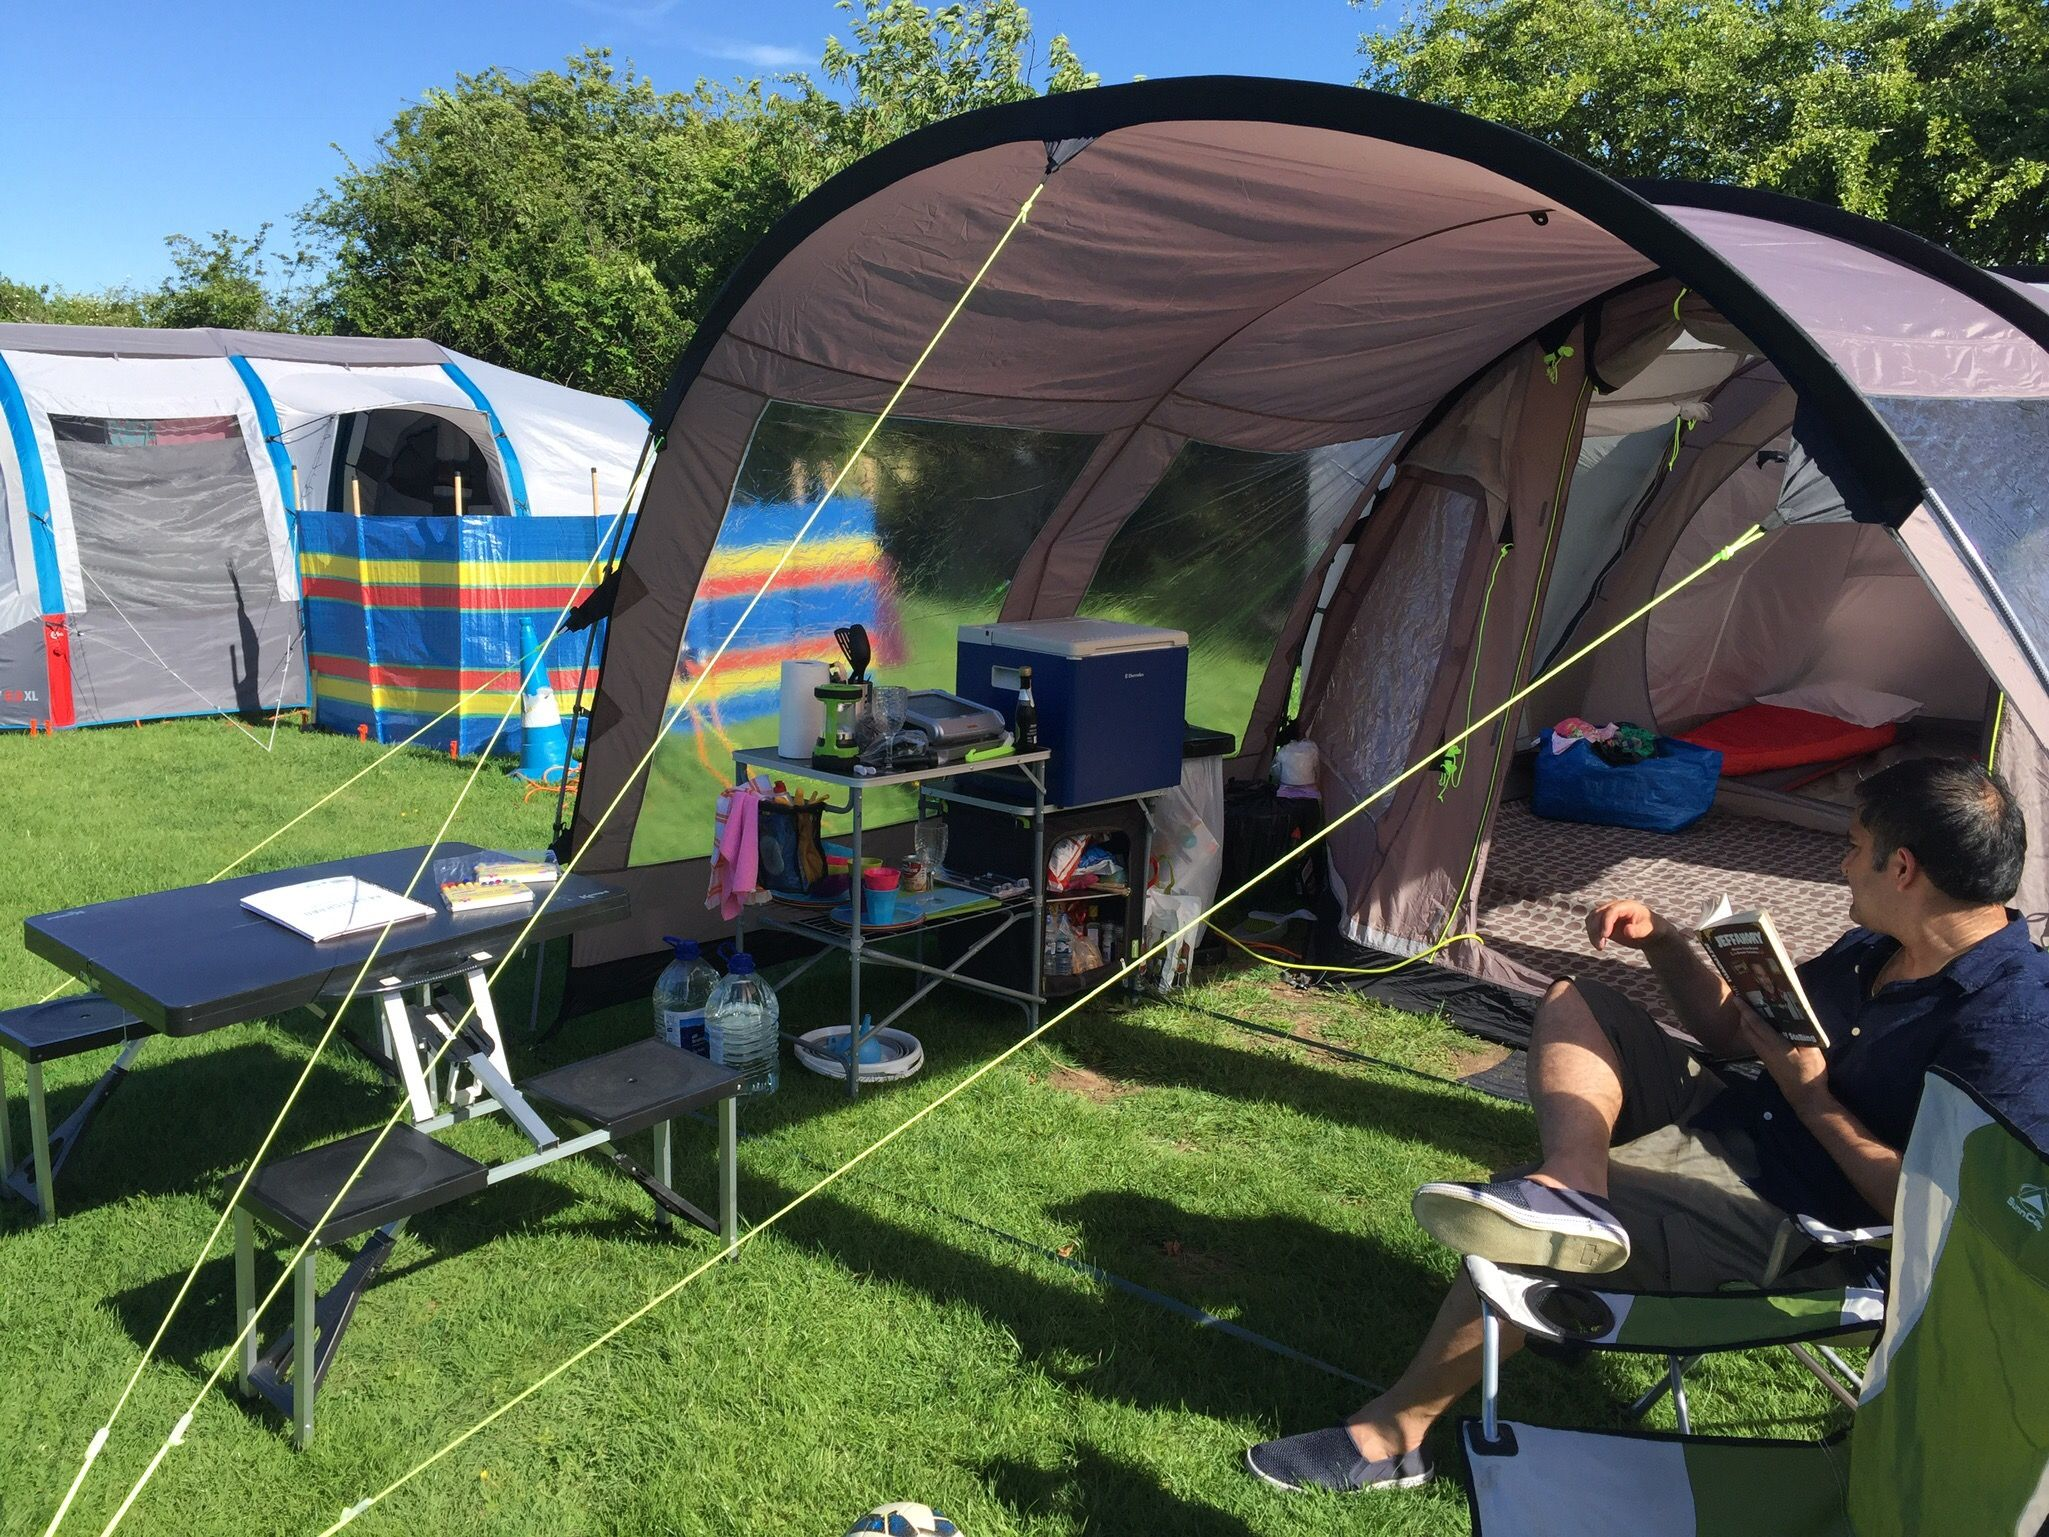 C&ing Outwell Nevada m tent front porch extension kitchen set up & Camping Outwell Nevada m tent front porch extension kitchen set up ...